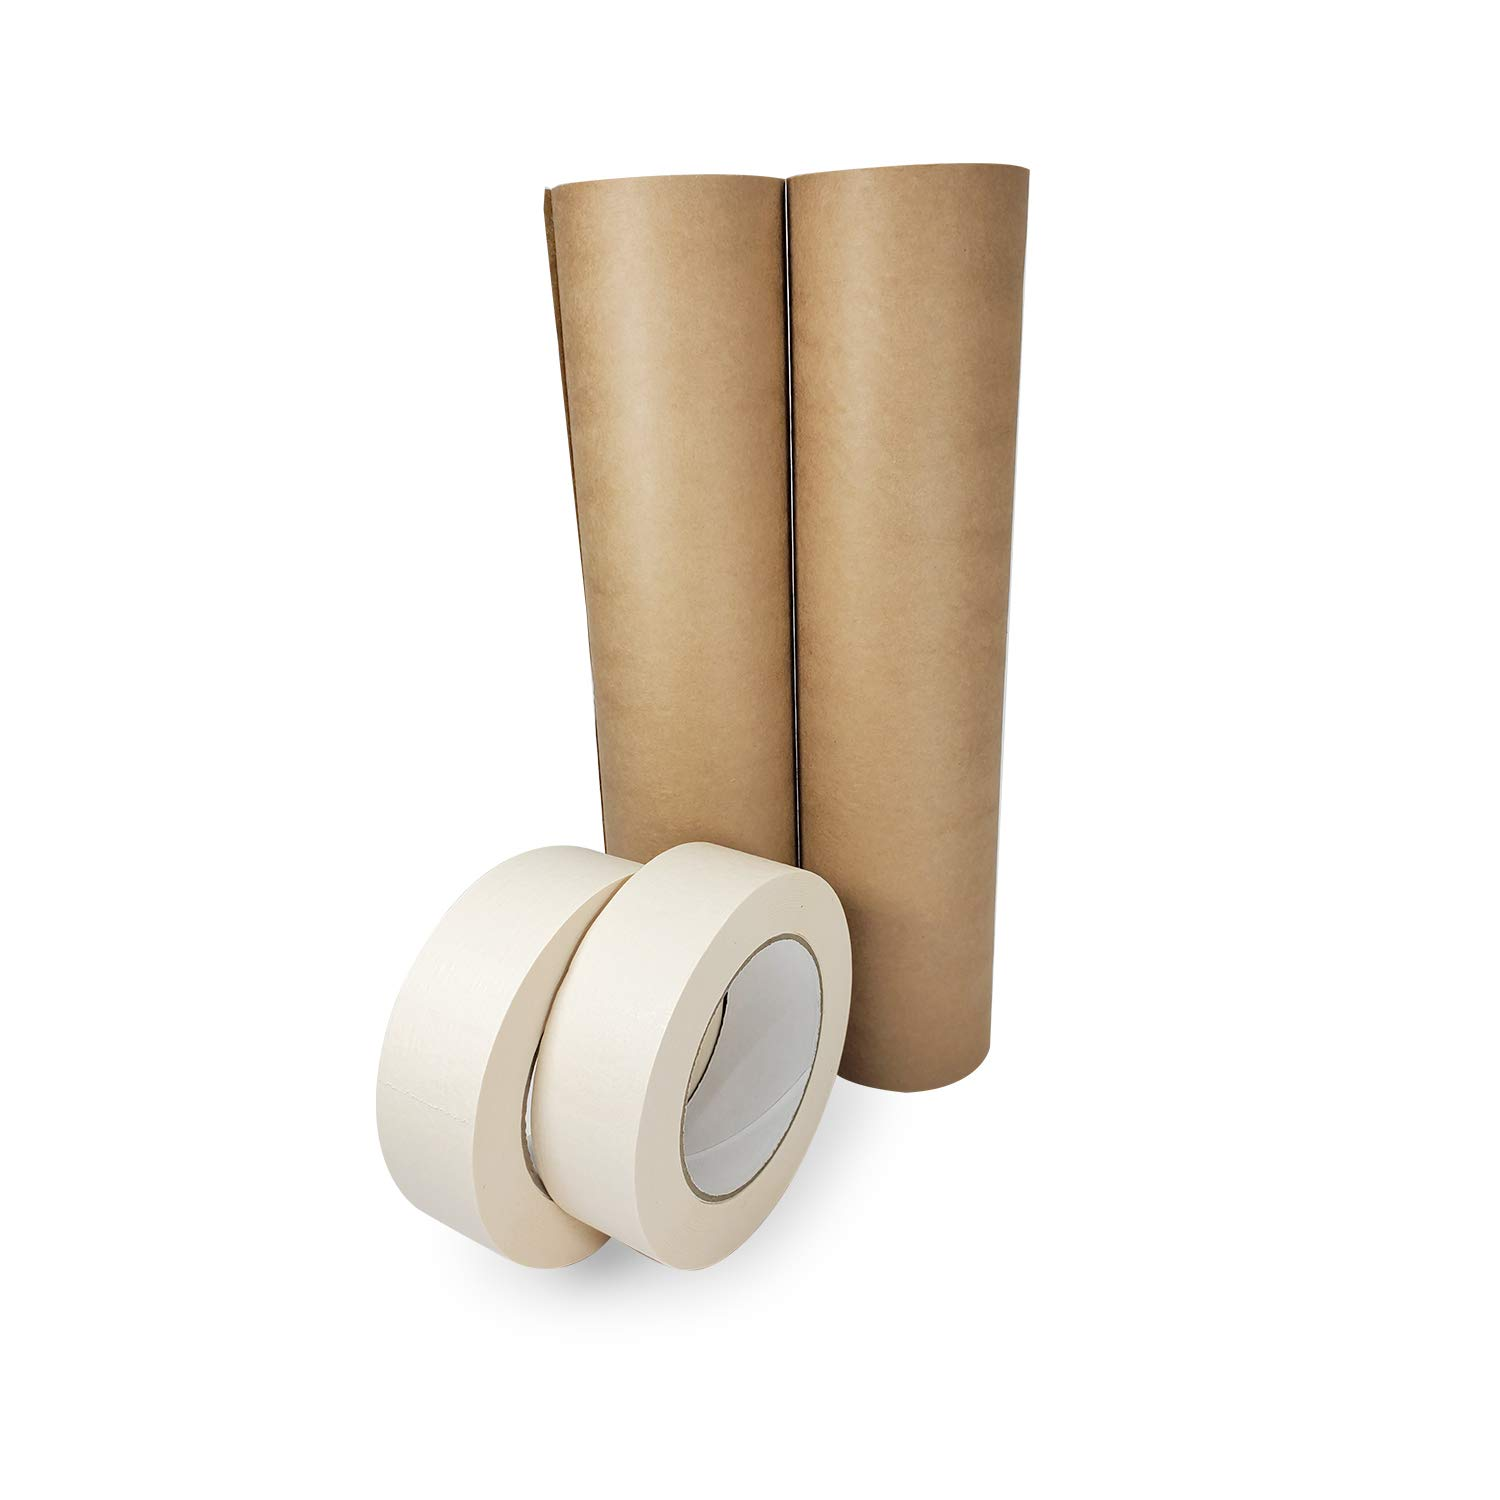 IDL Packaging Masking Paper with Tape Rolls. Brown Masking Paper Roll - 12